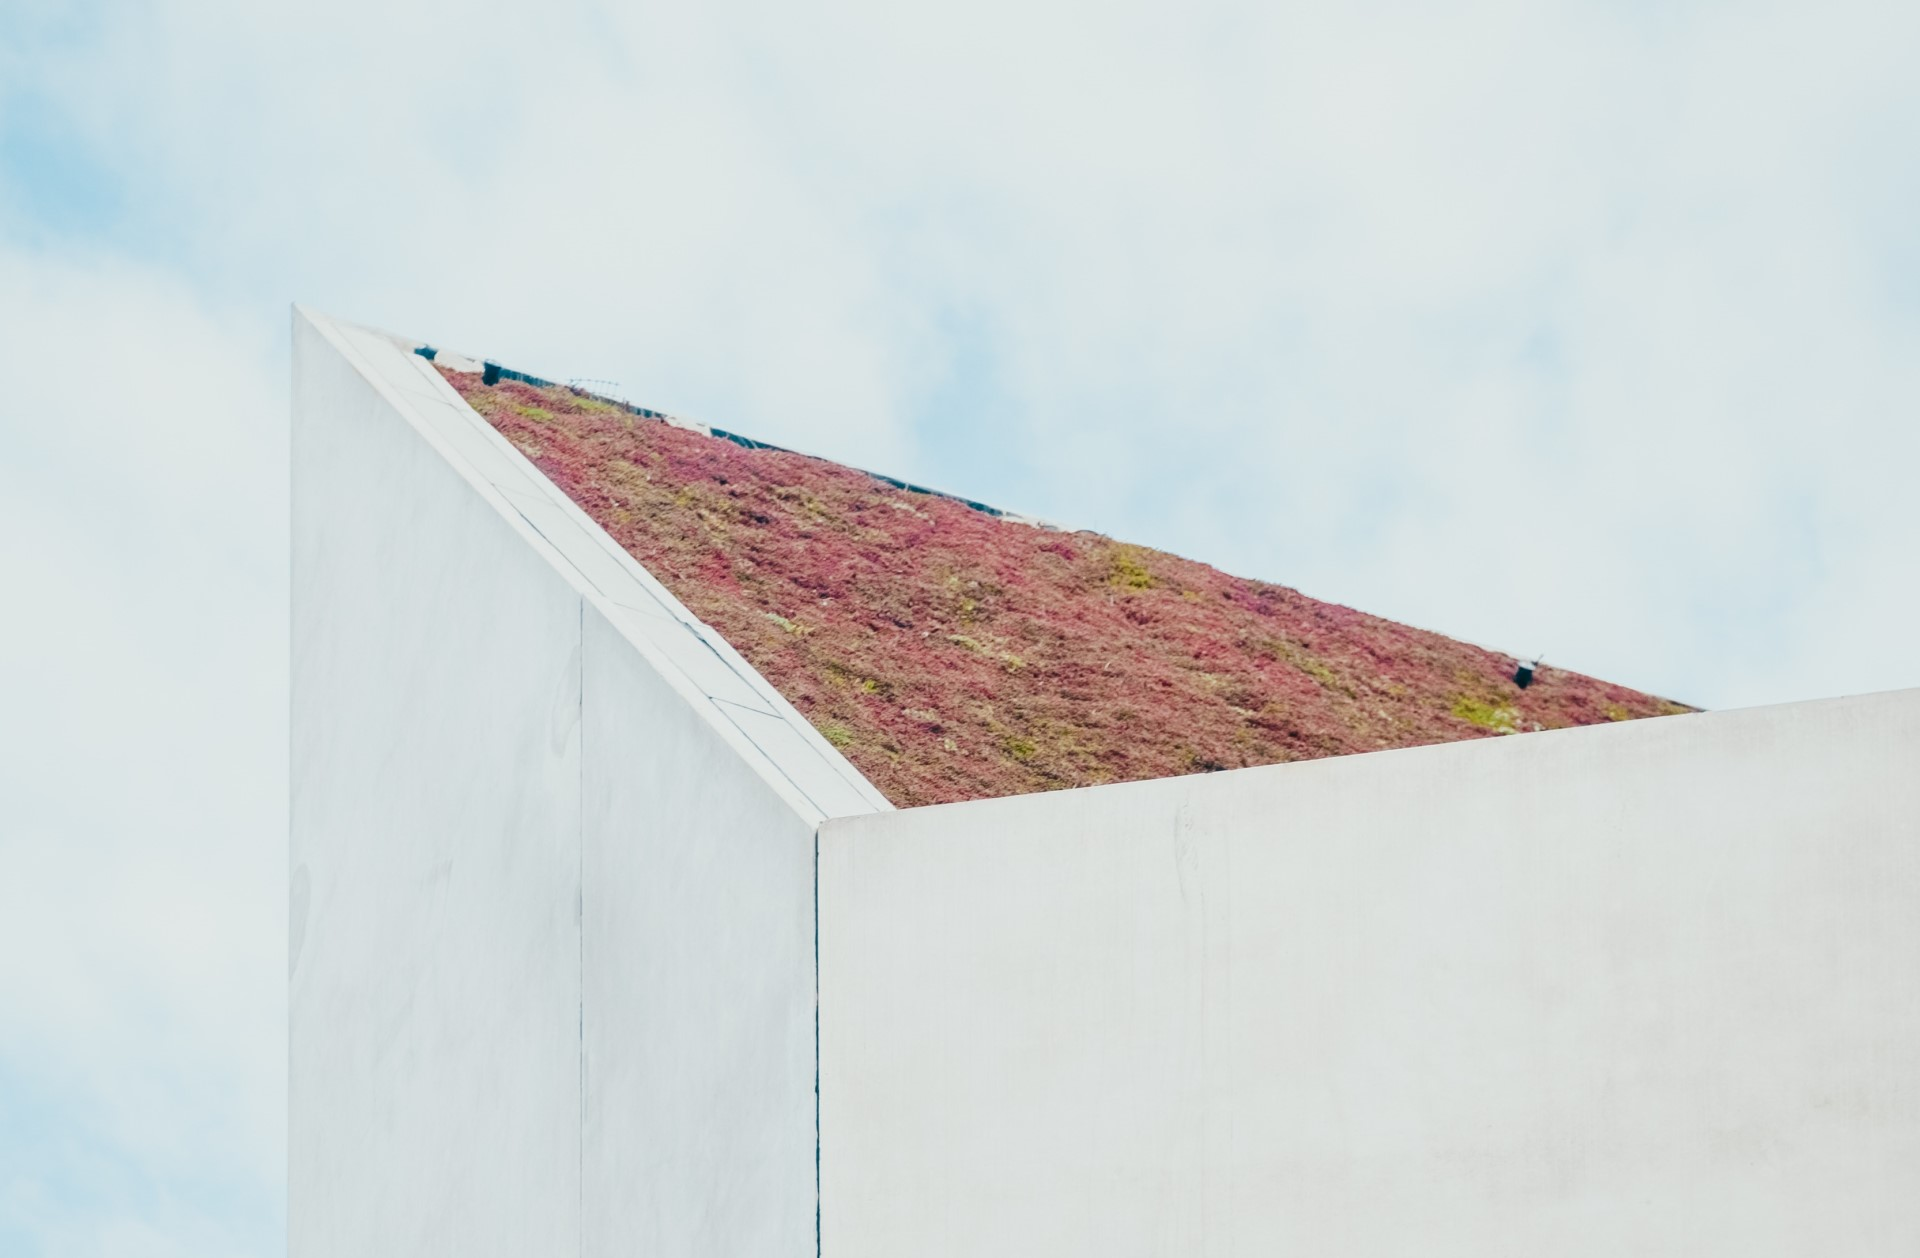 3 Financial Benefits of Maintaining a Green Roof